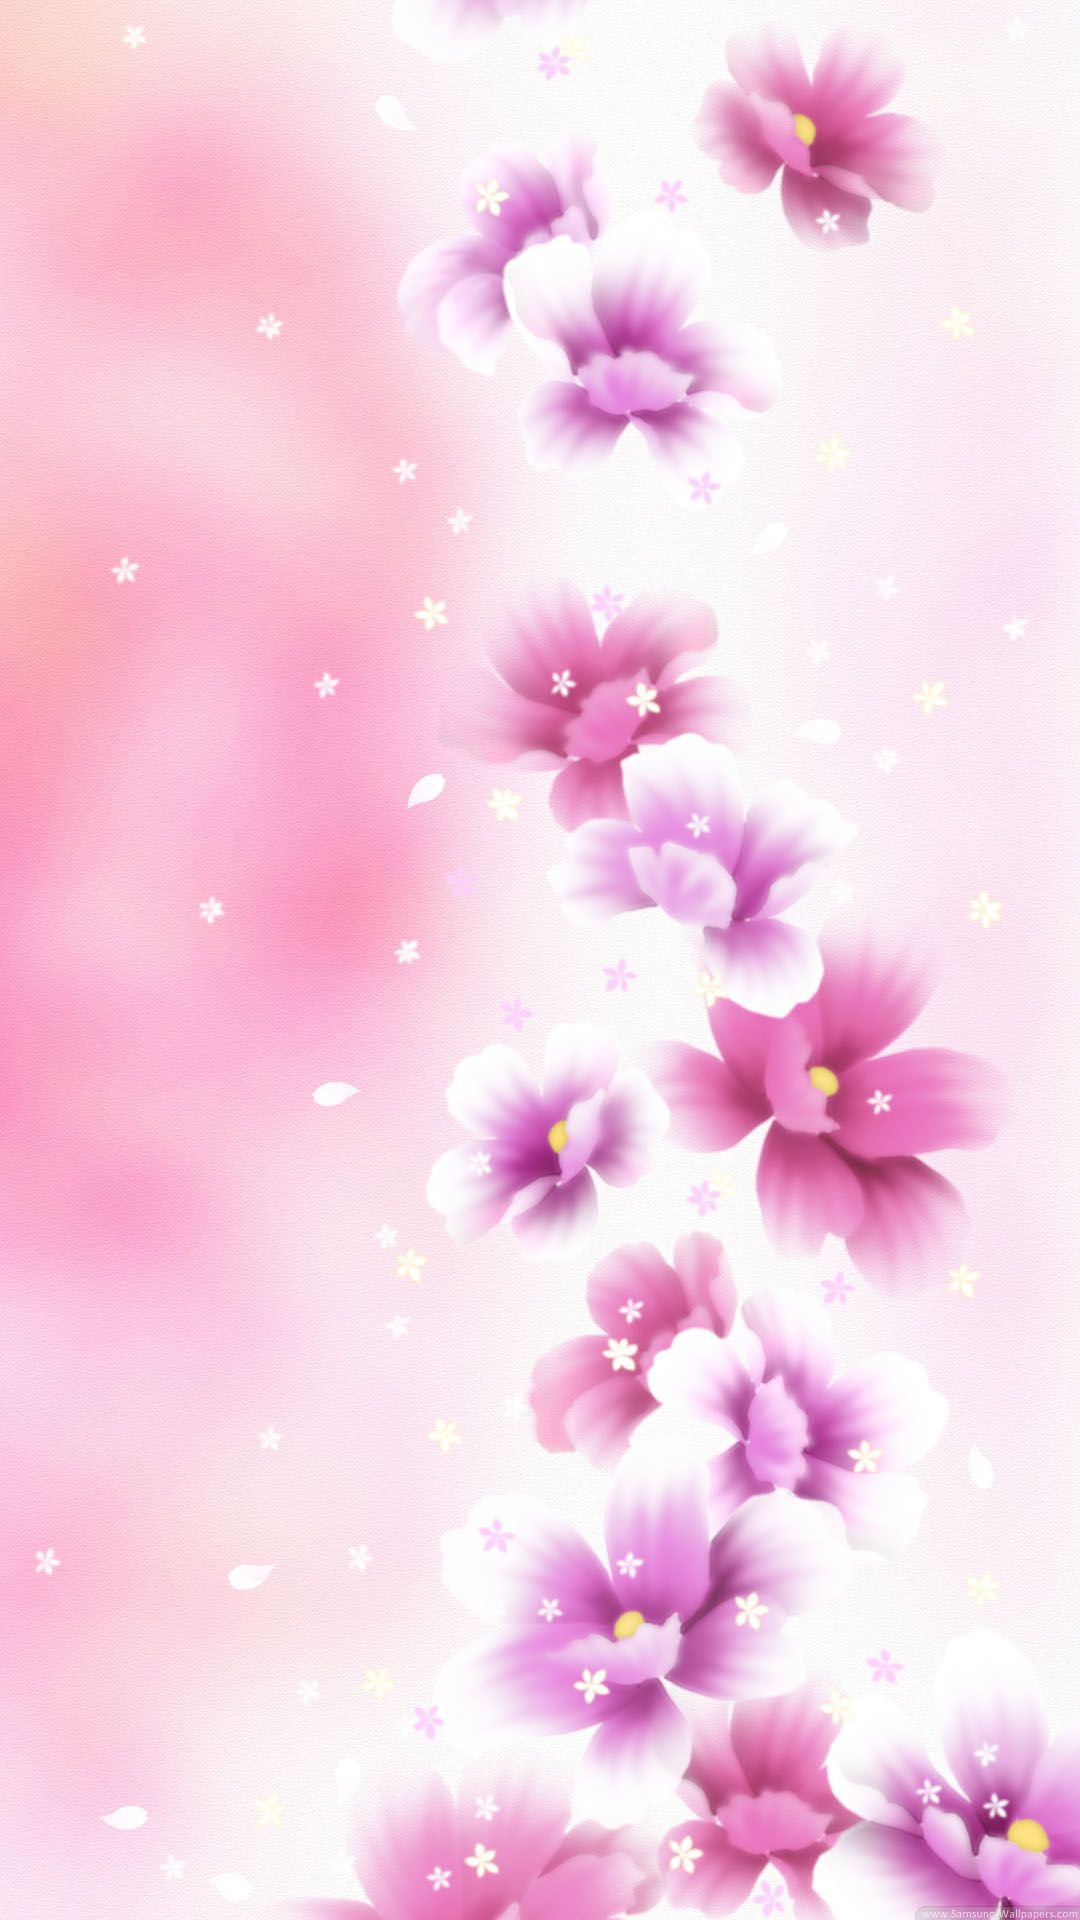 Cute Pink And White Wallpaper Iphone In 2020 Flower Iphone Wallpaper White Wallpaper For Iphone Pretty Phone Wallpaper